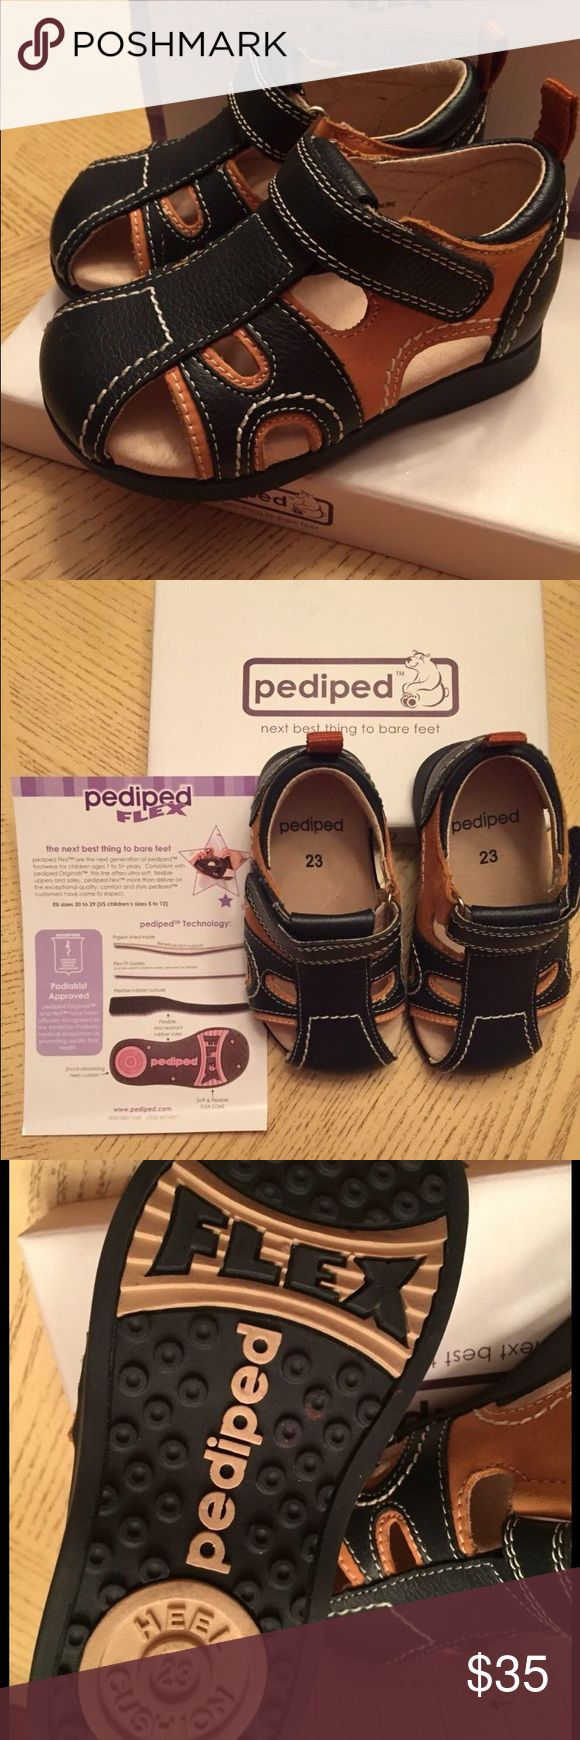 New- Pediped Boy's Shoes ❣ Pediatrics Approved Children Shoes ❣It has an ultra soft soles and flexible upper ❣ Leather shoes ❣ Color: Navy and Camel Shoes Sandals & Flip Flops